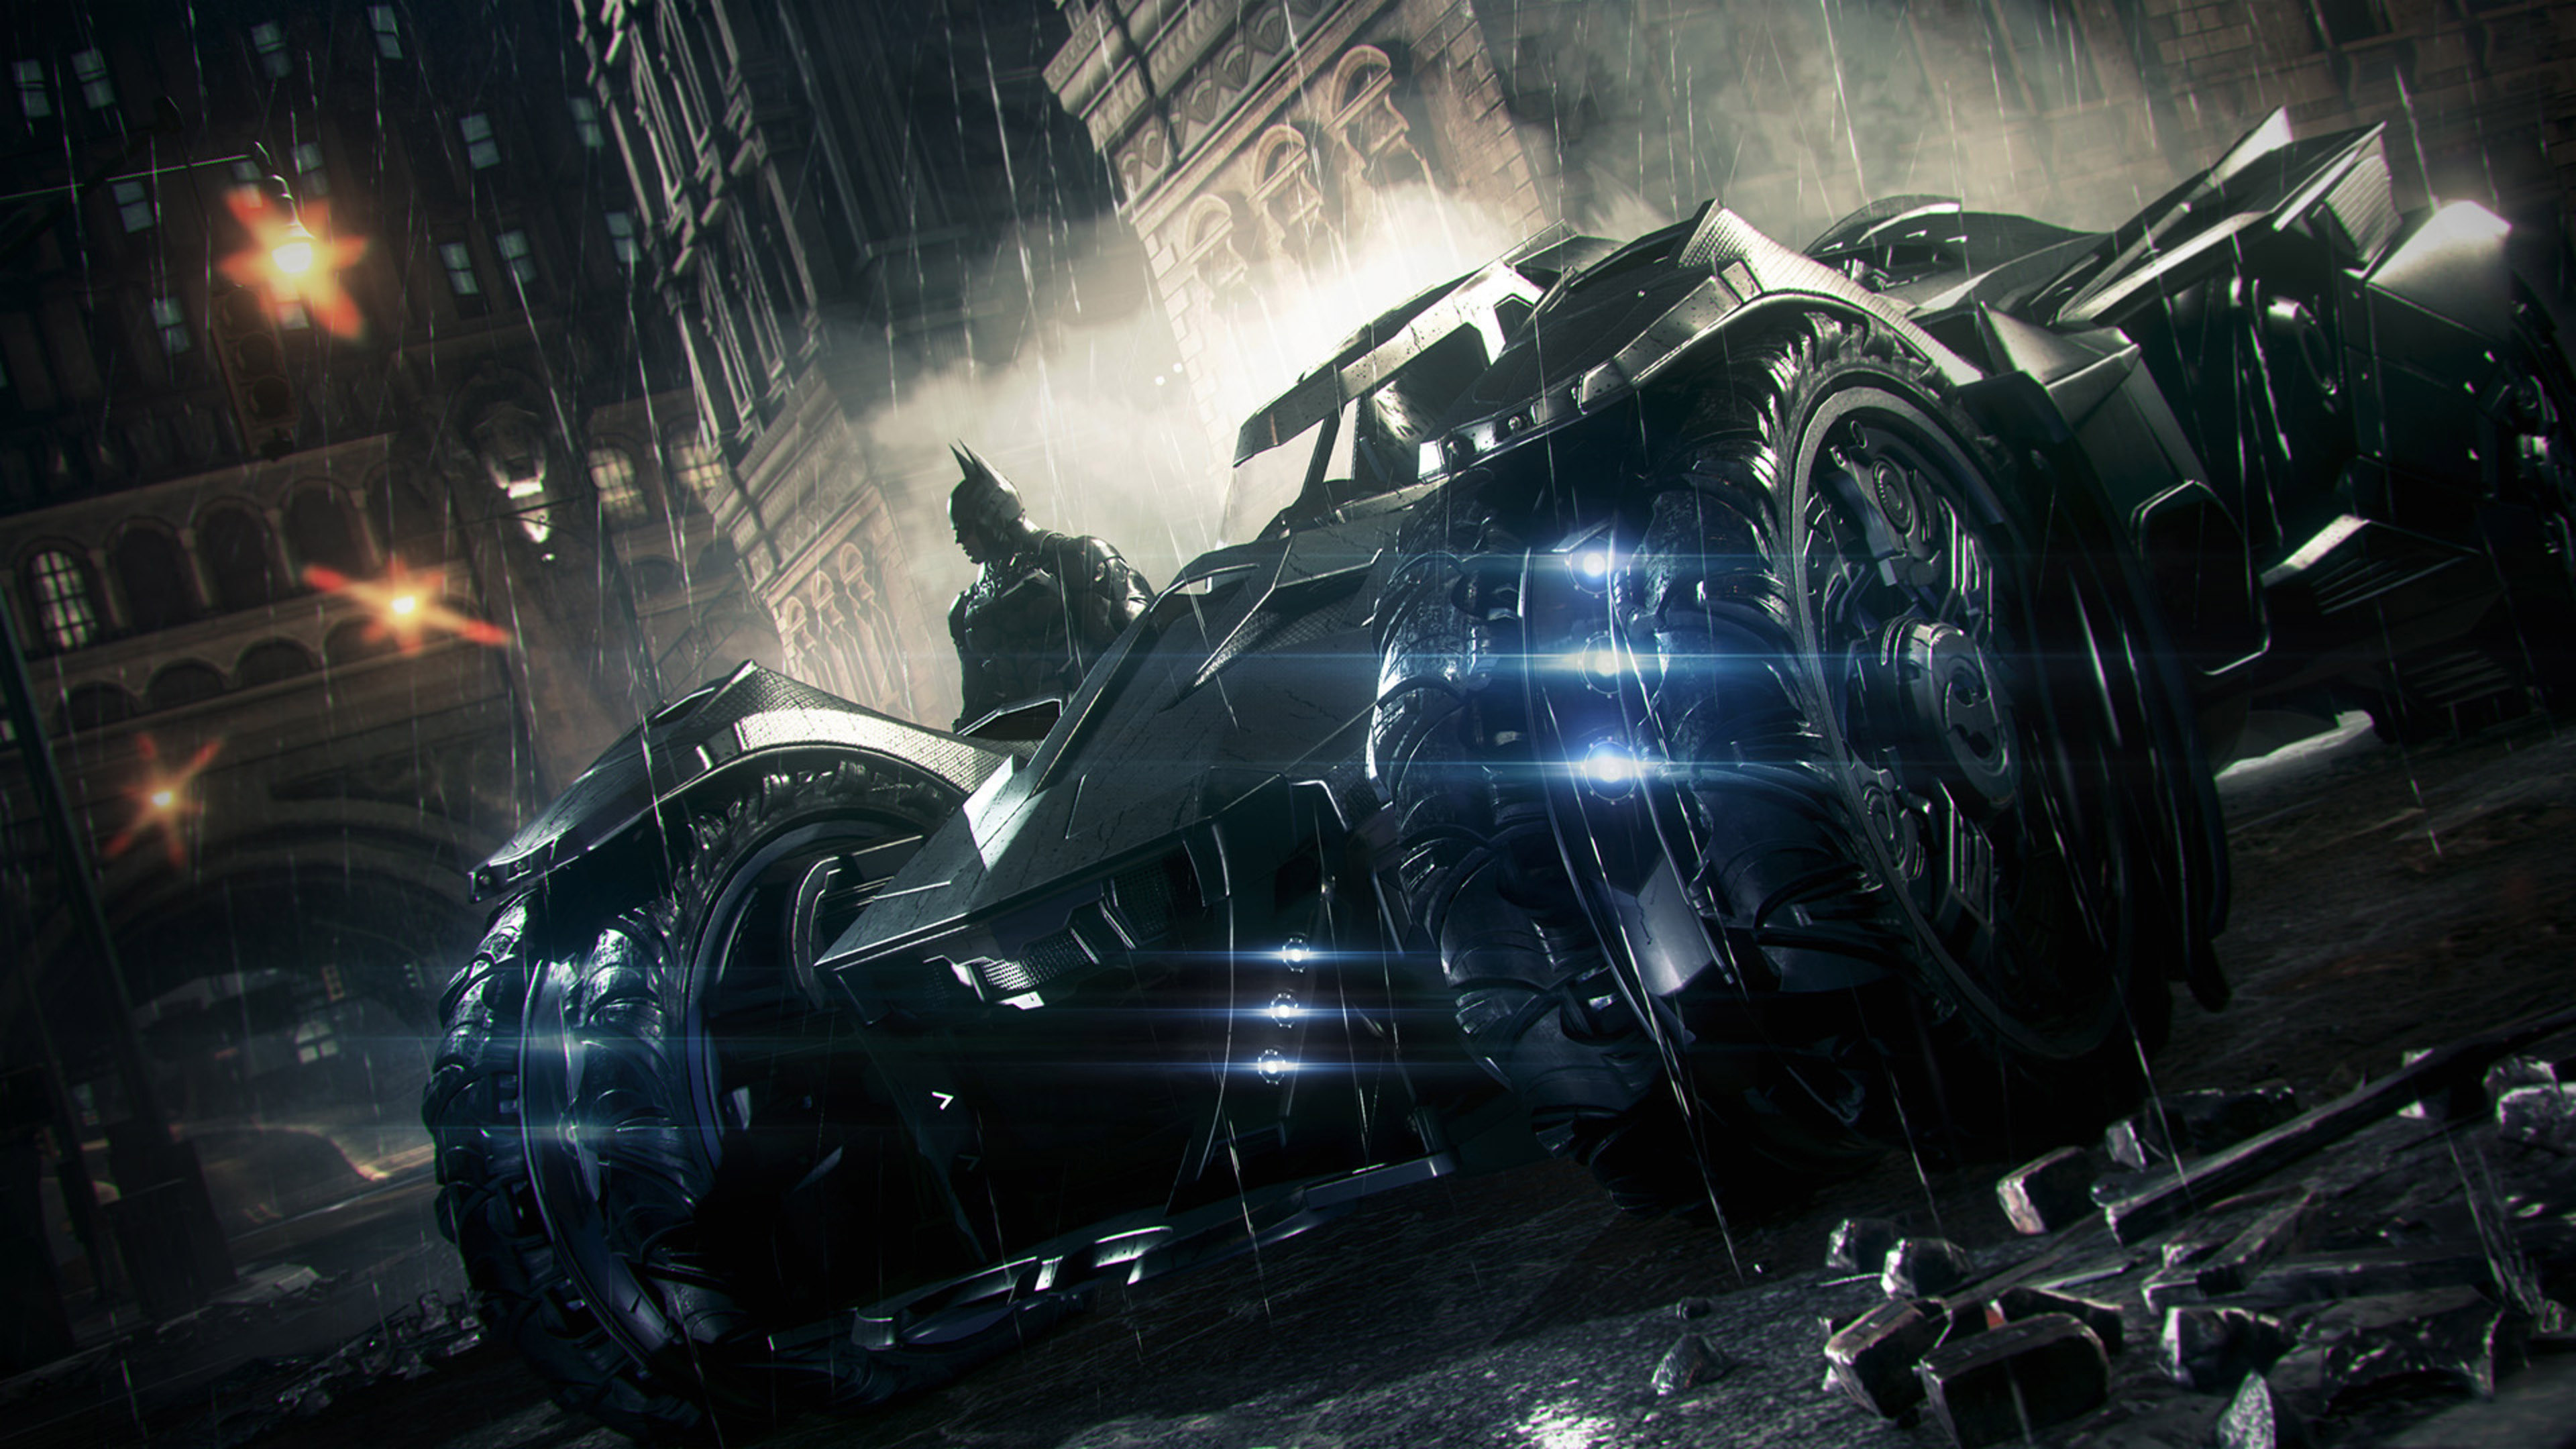 Download 2014 Batmobile Batman Arkham Knight HD Wallpapers 6470 Full 3840x2160